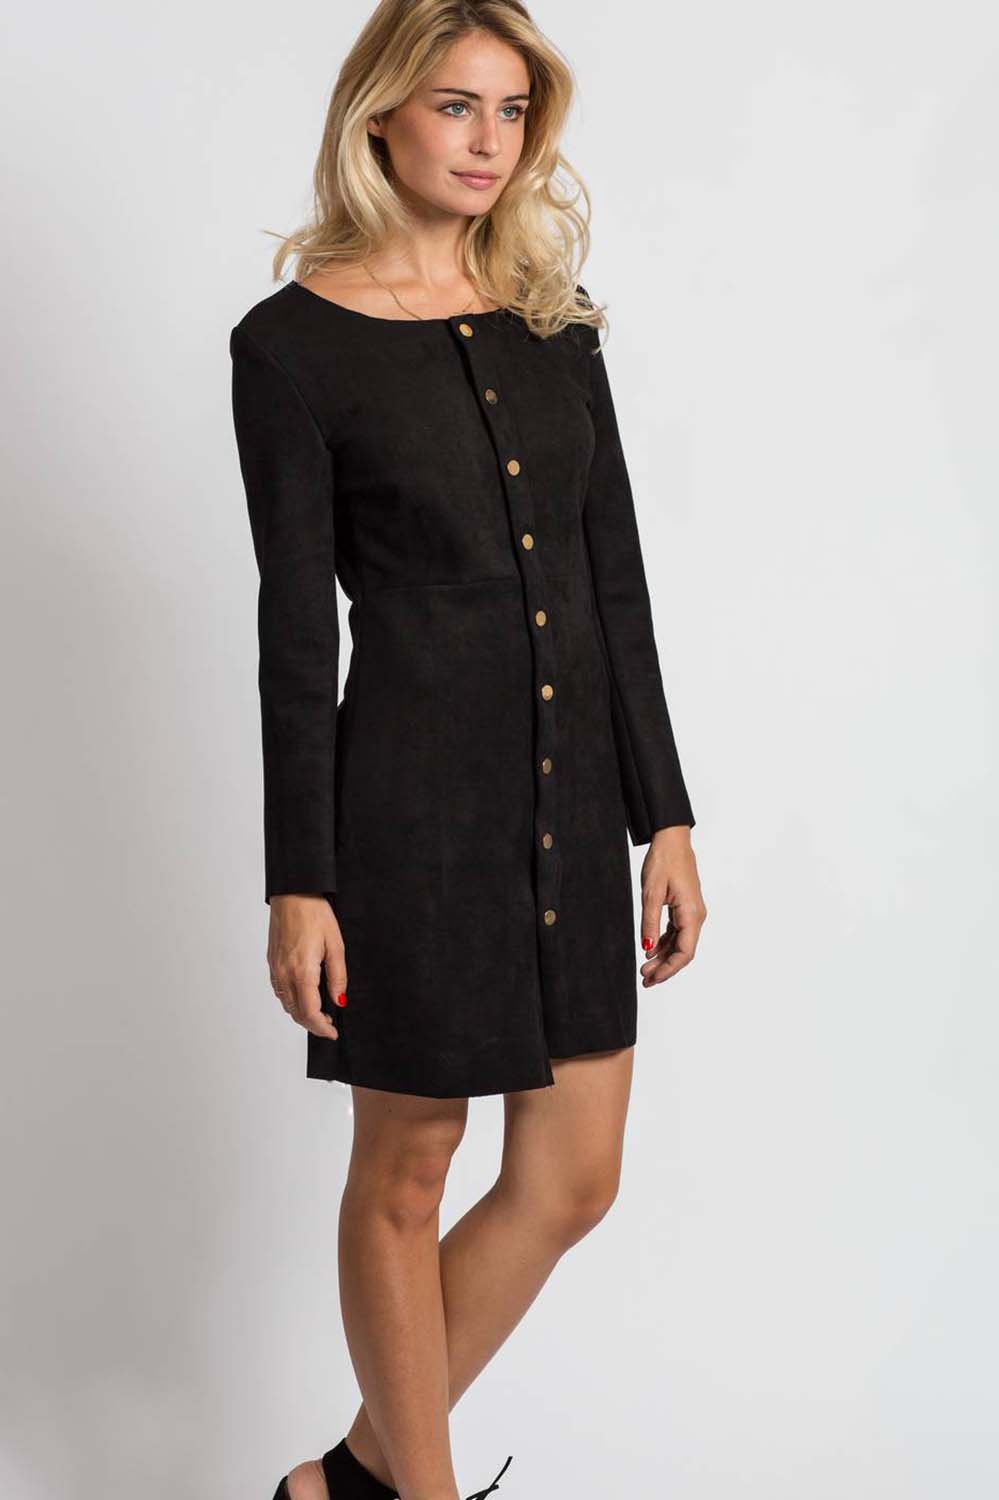 Suede Buttons Dress ρουχα